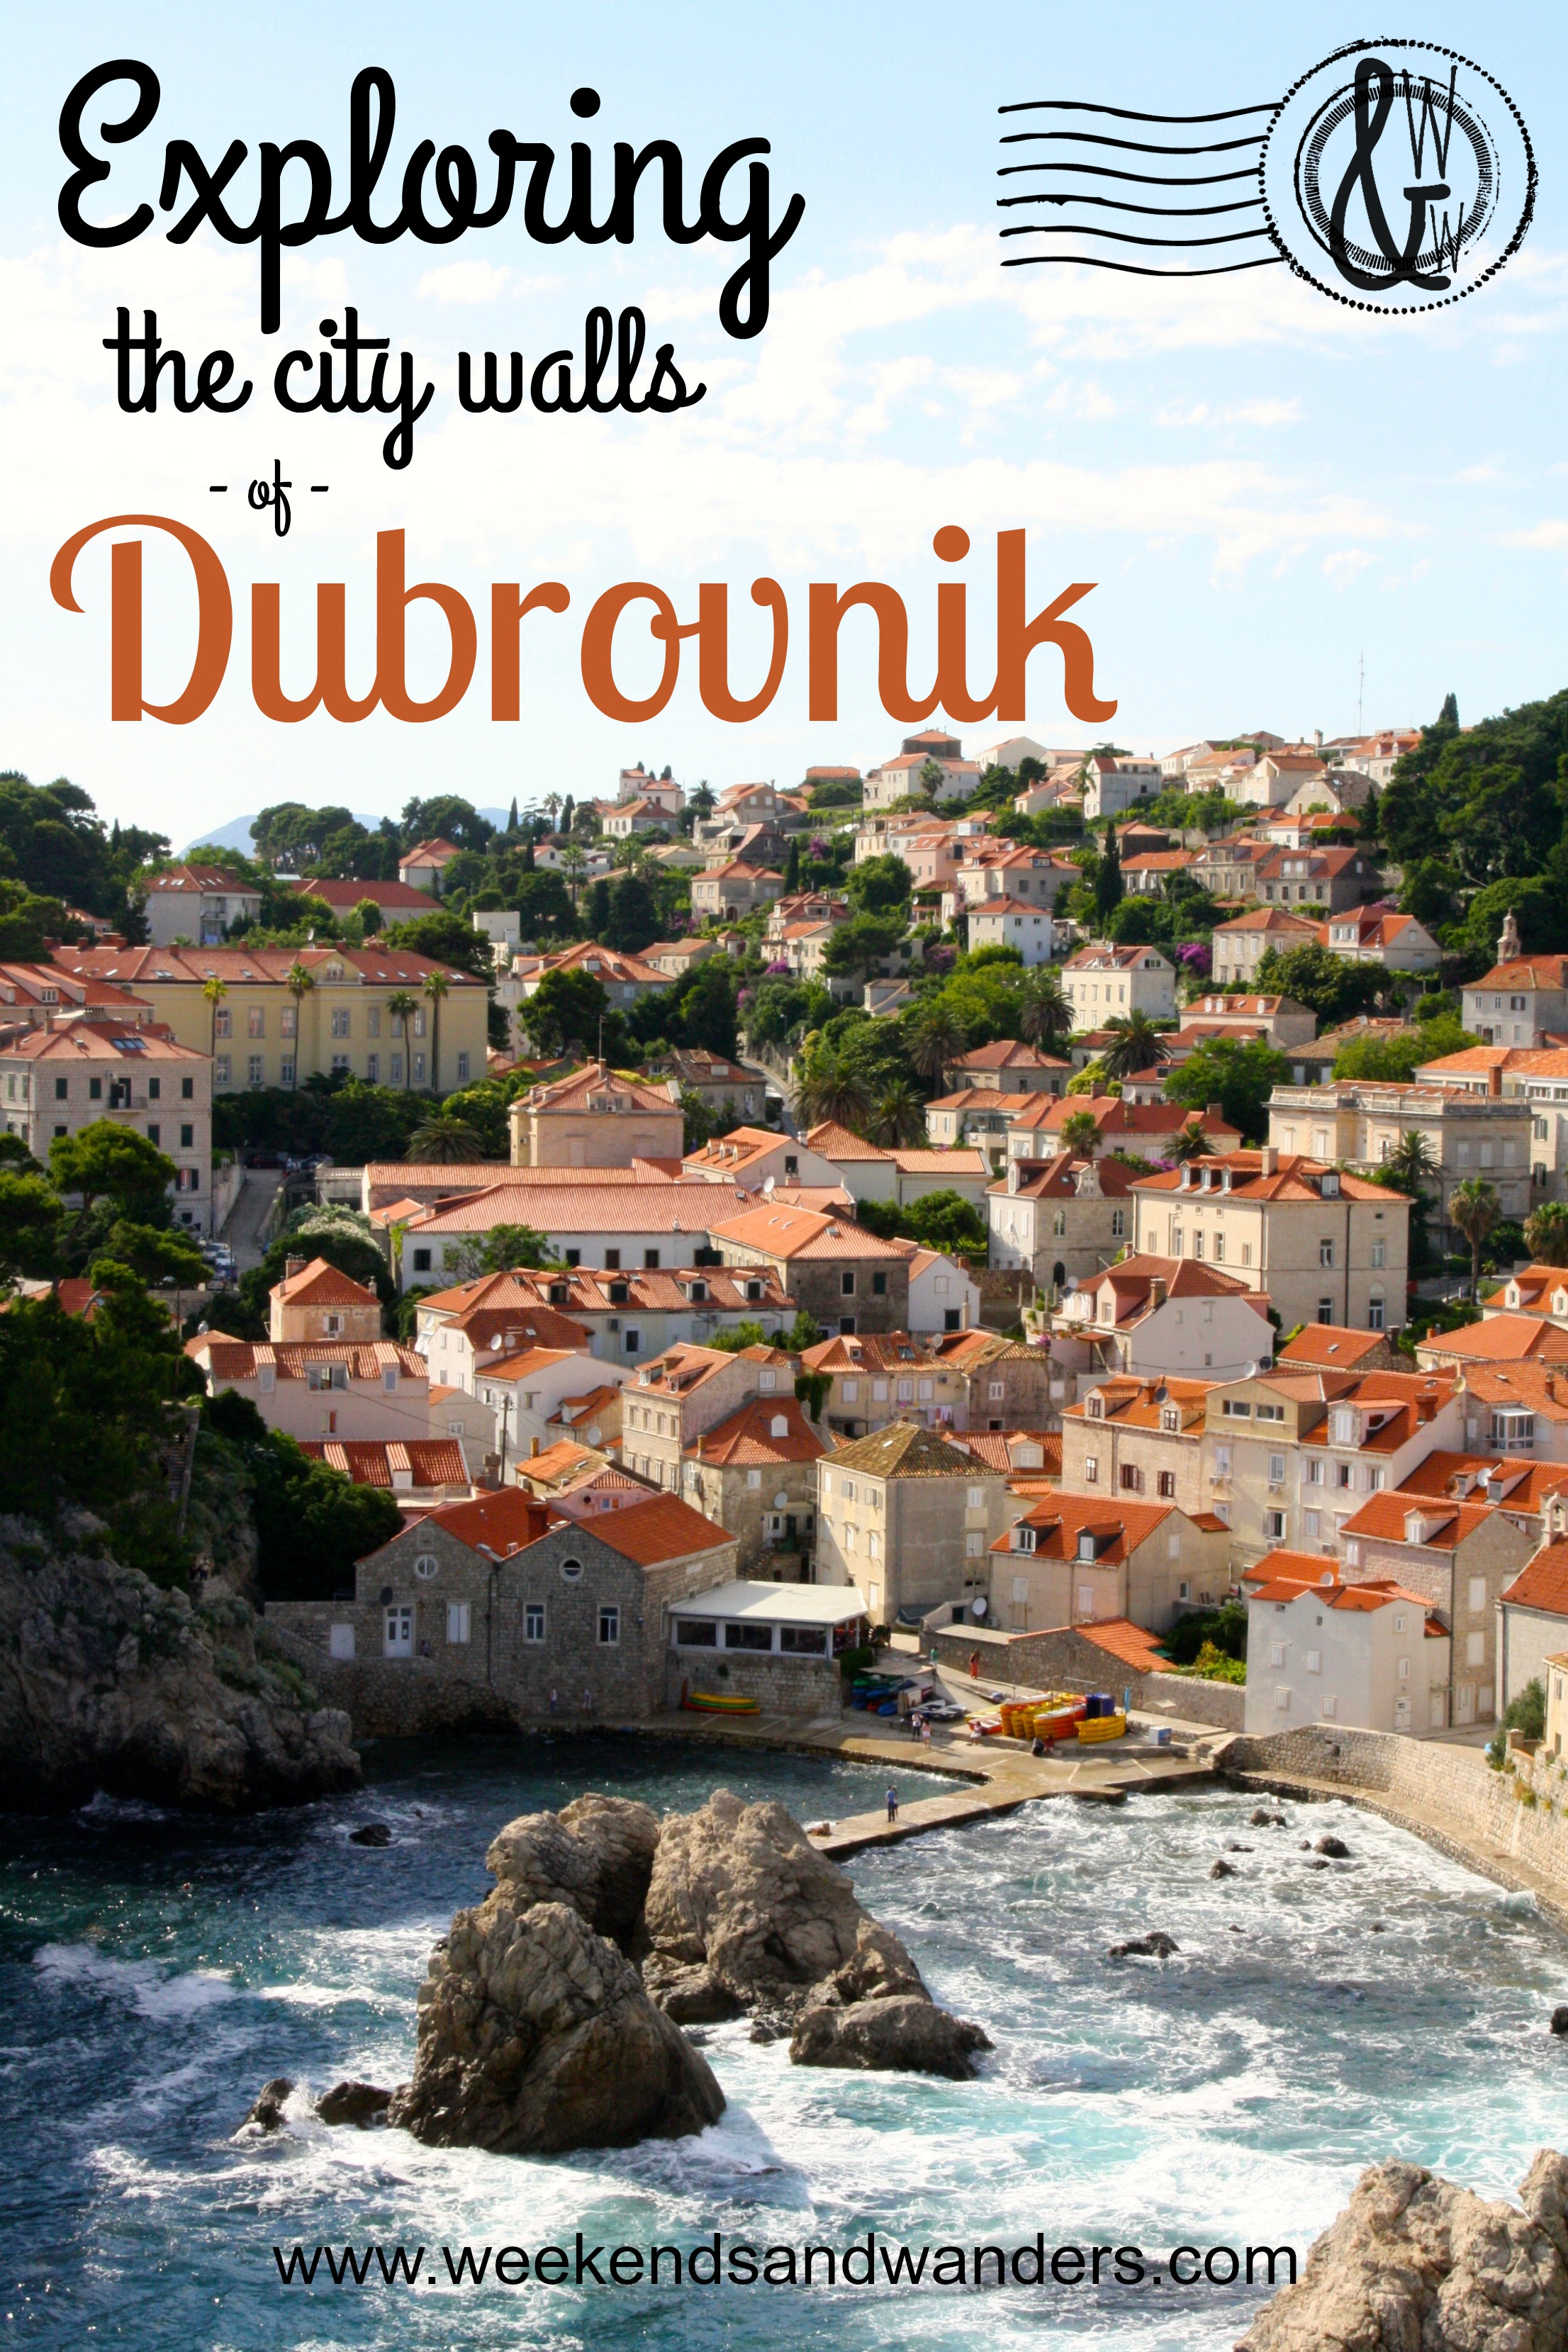 Exploring the City Walls of Dubrovnik, Croatia